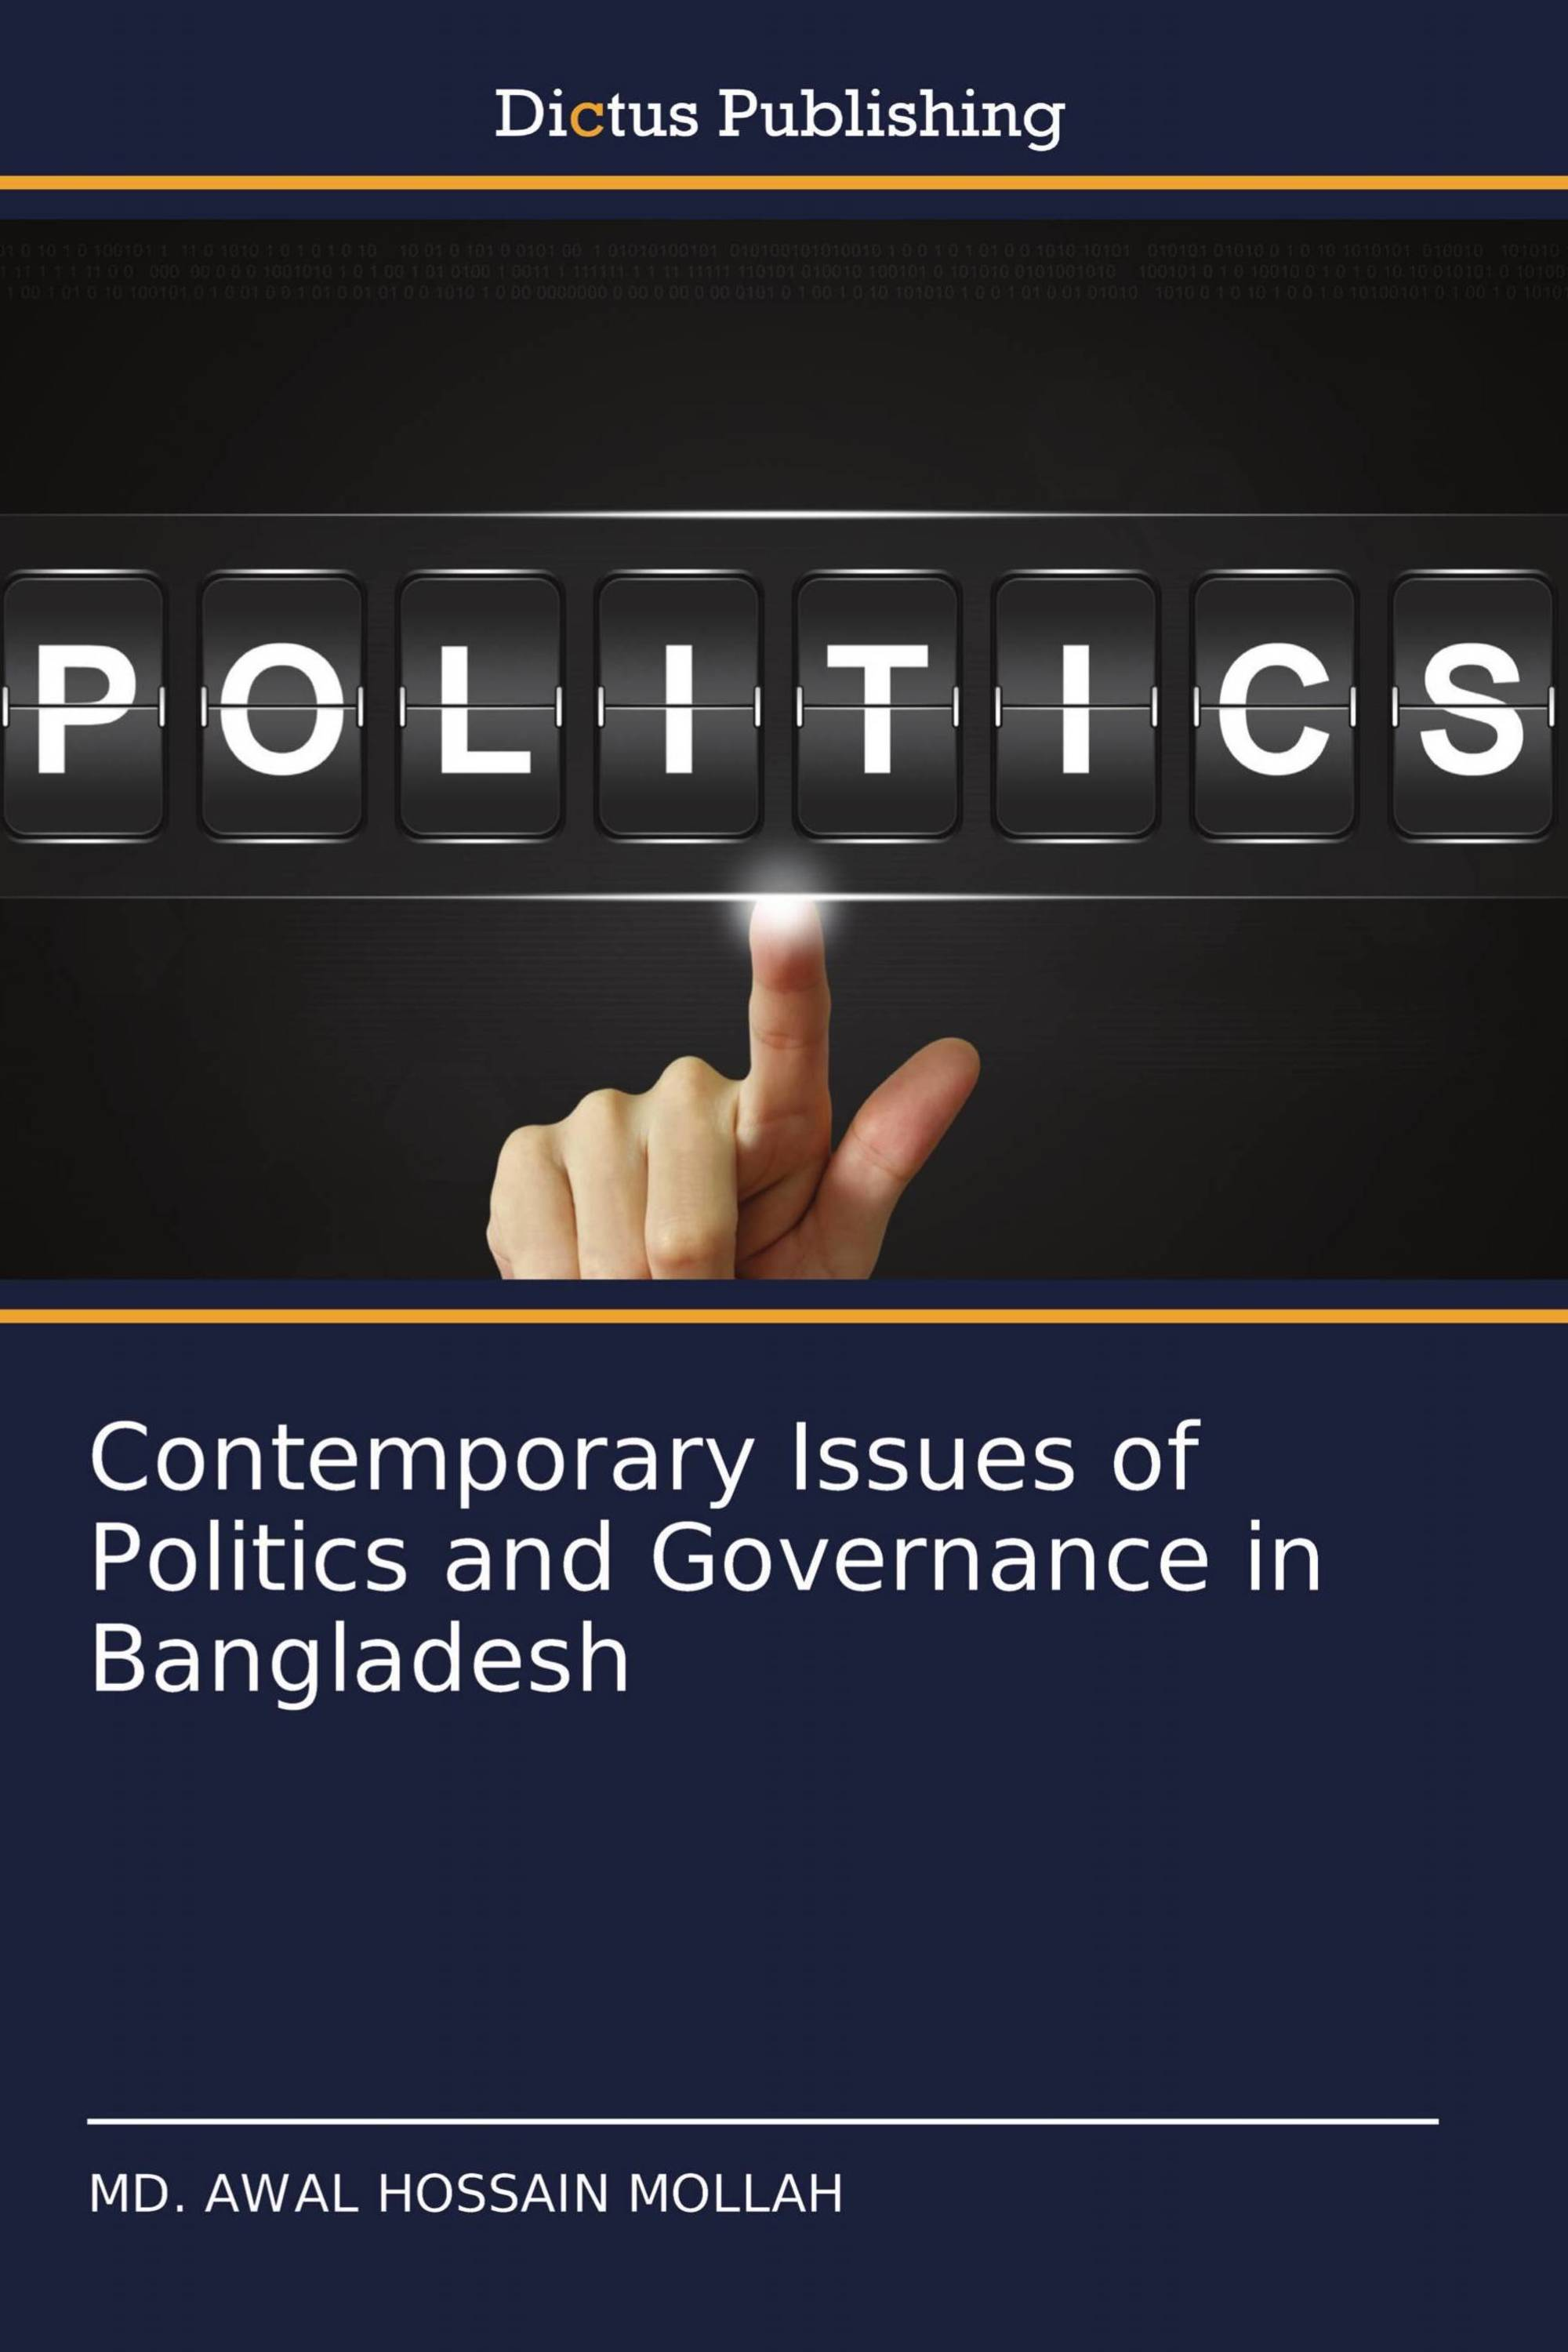 Contemporary Issues of Politics and Governance in Bangladesh